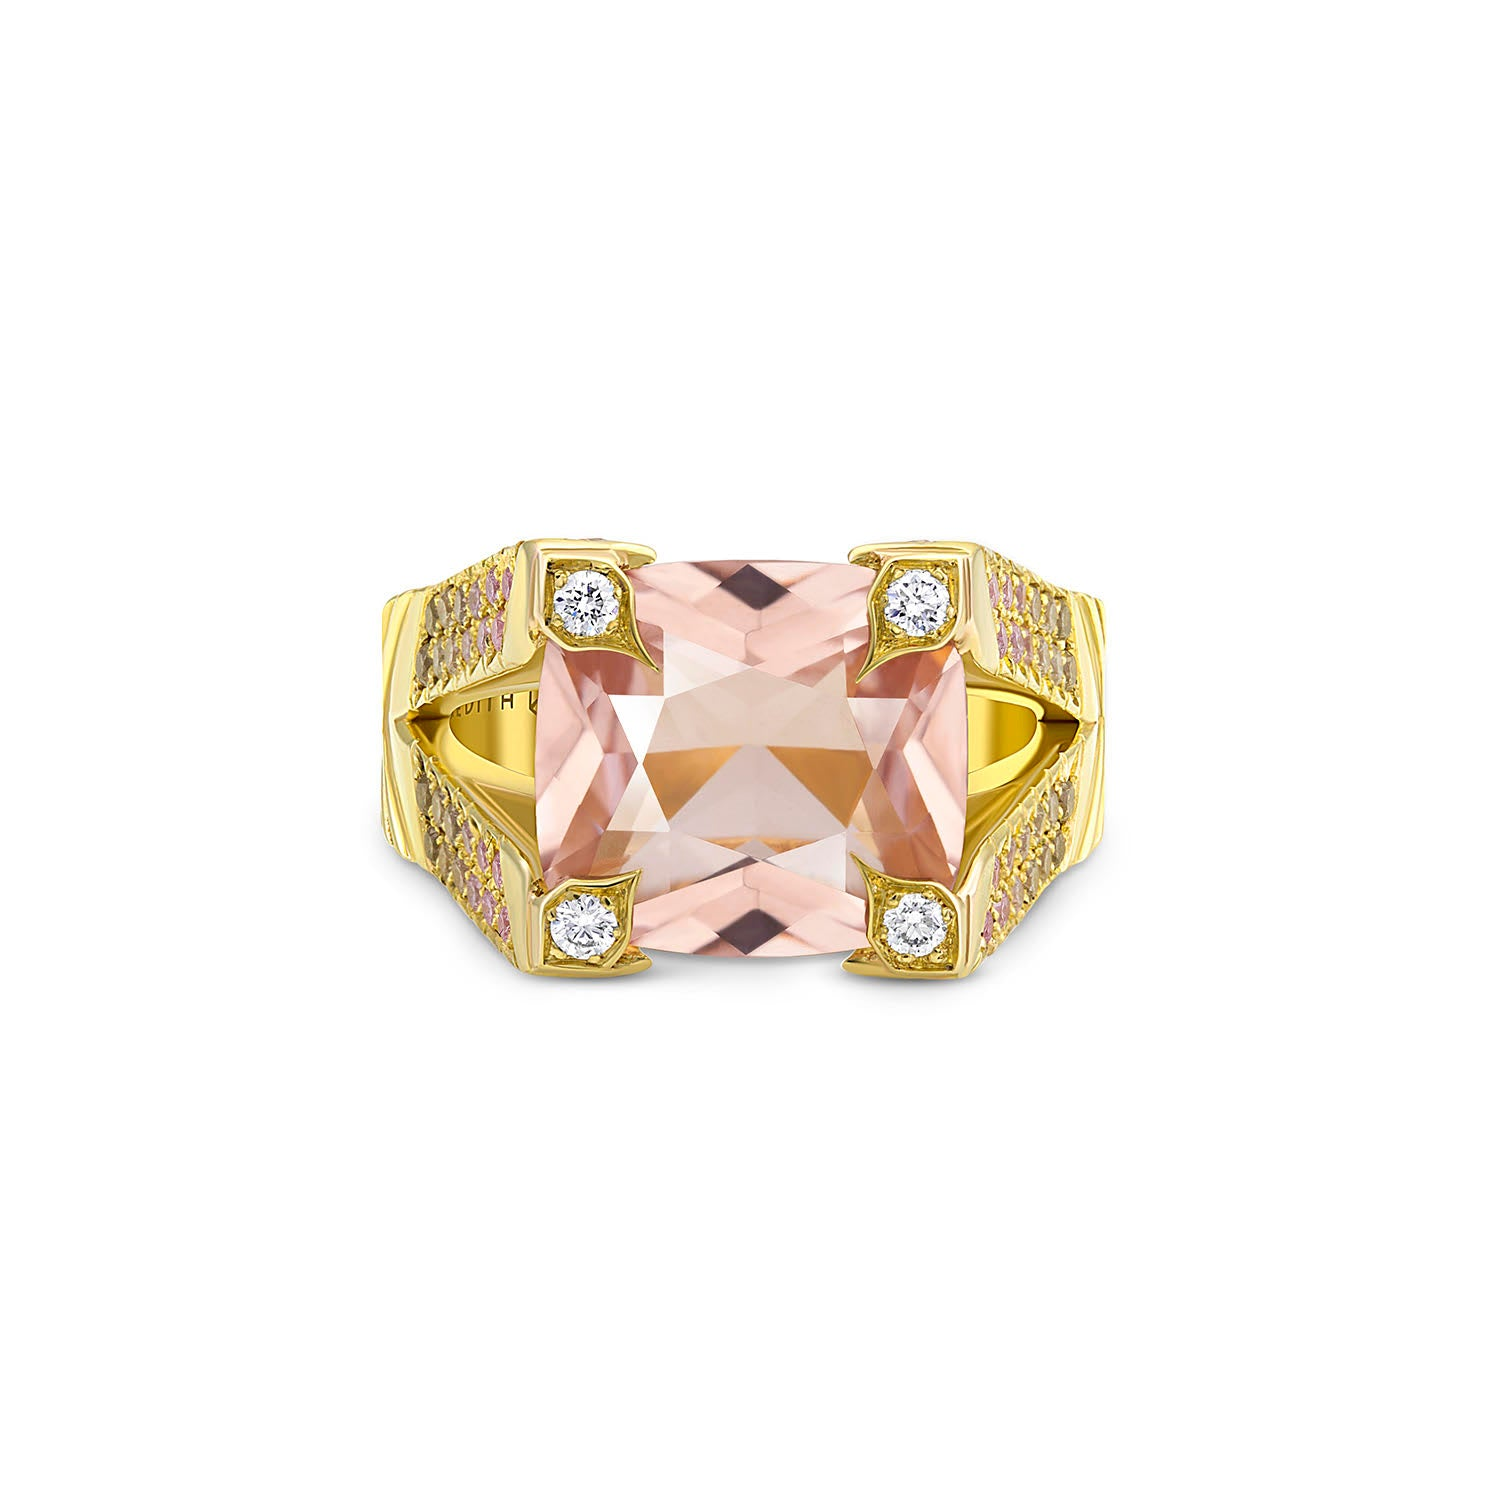 Ombre Pink Diamond Morganite Ring